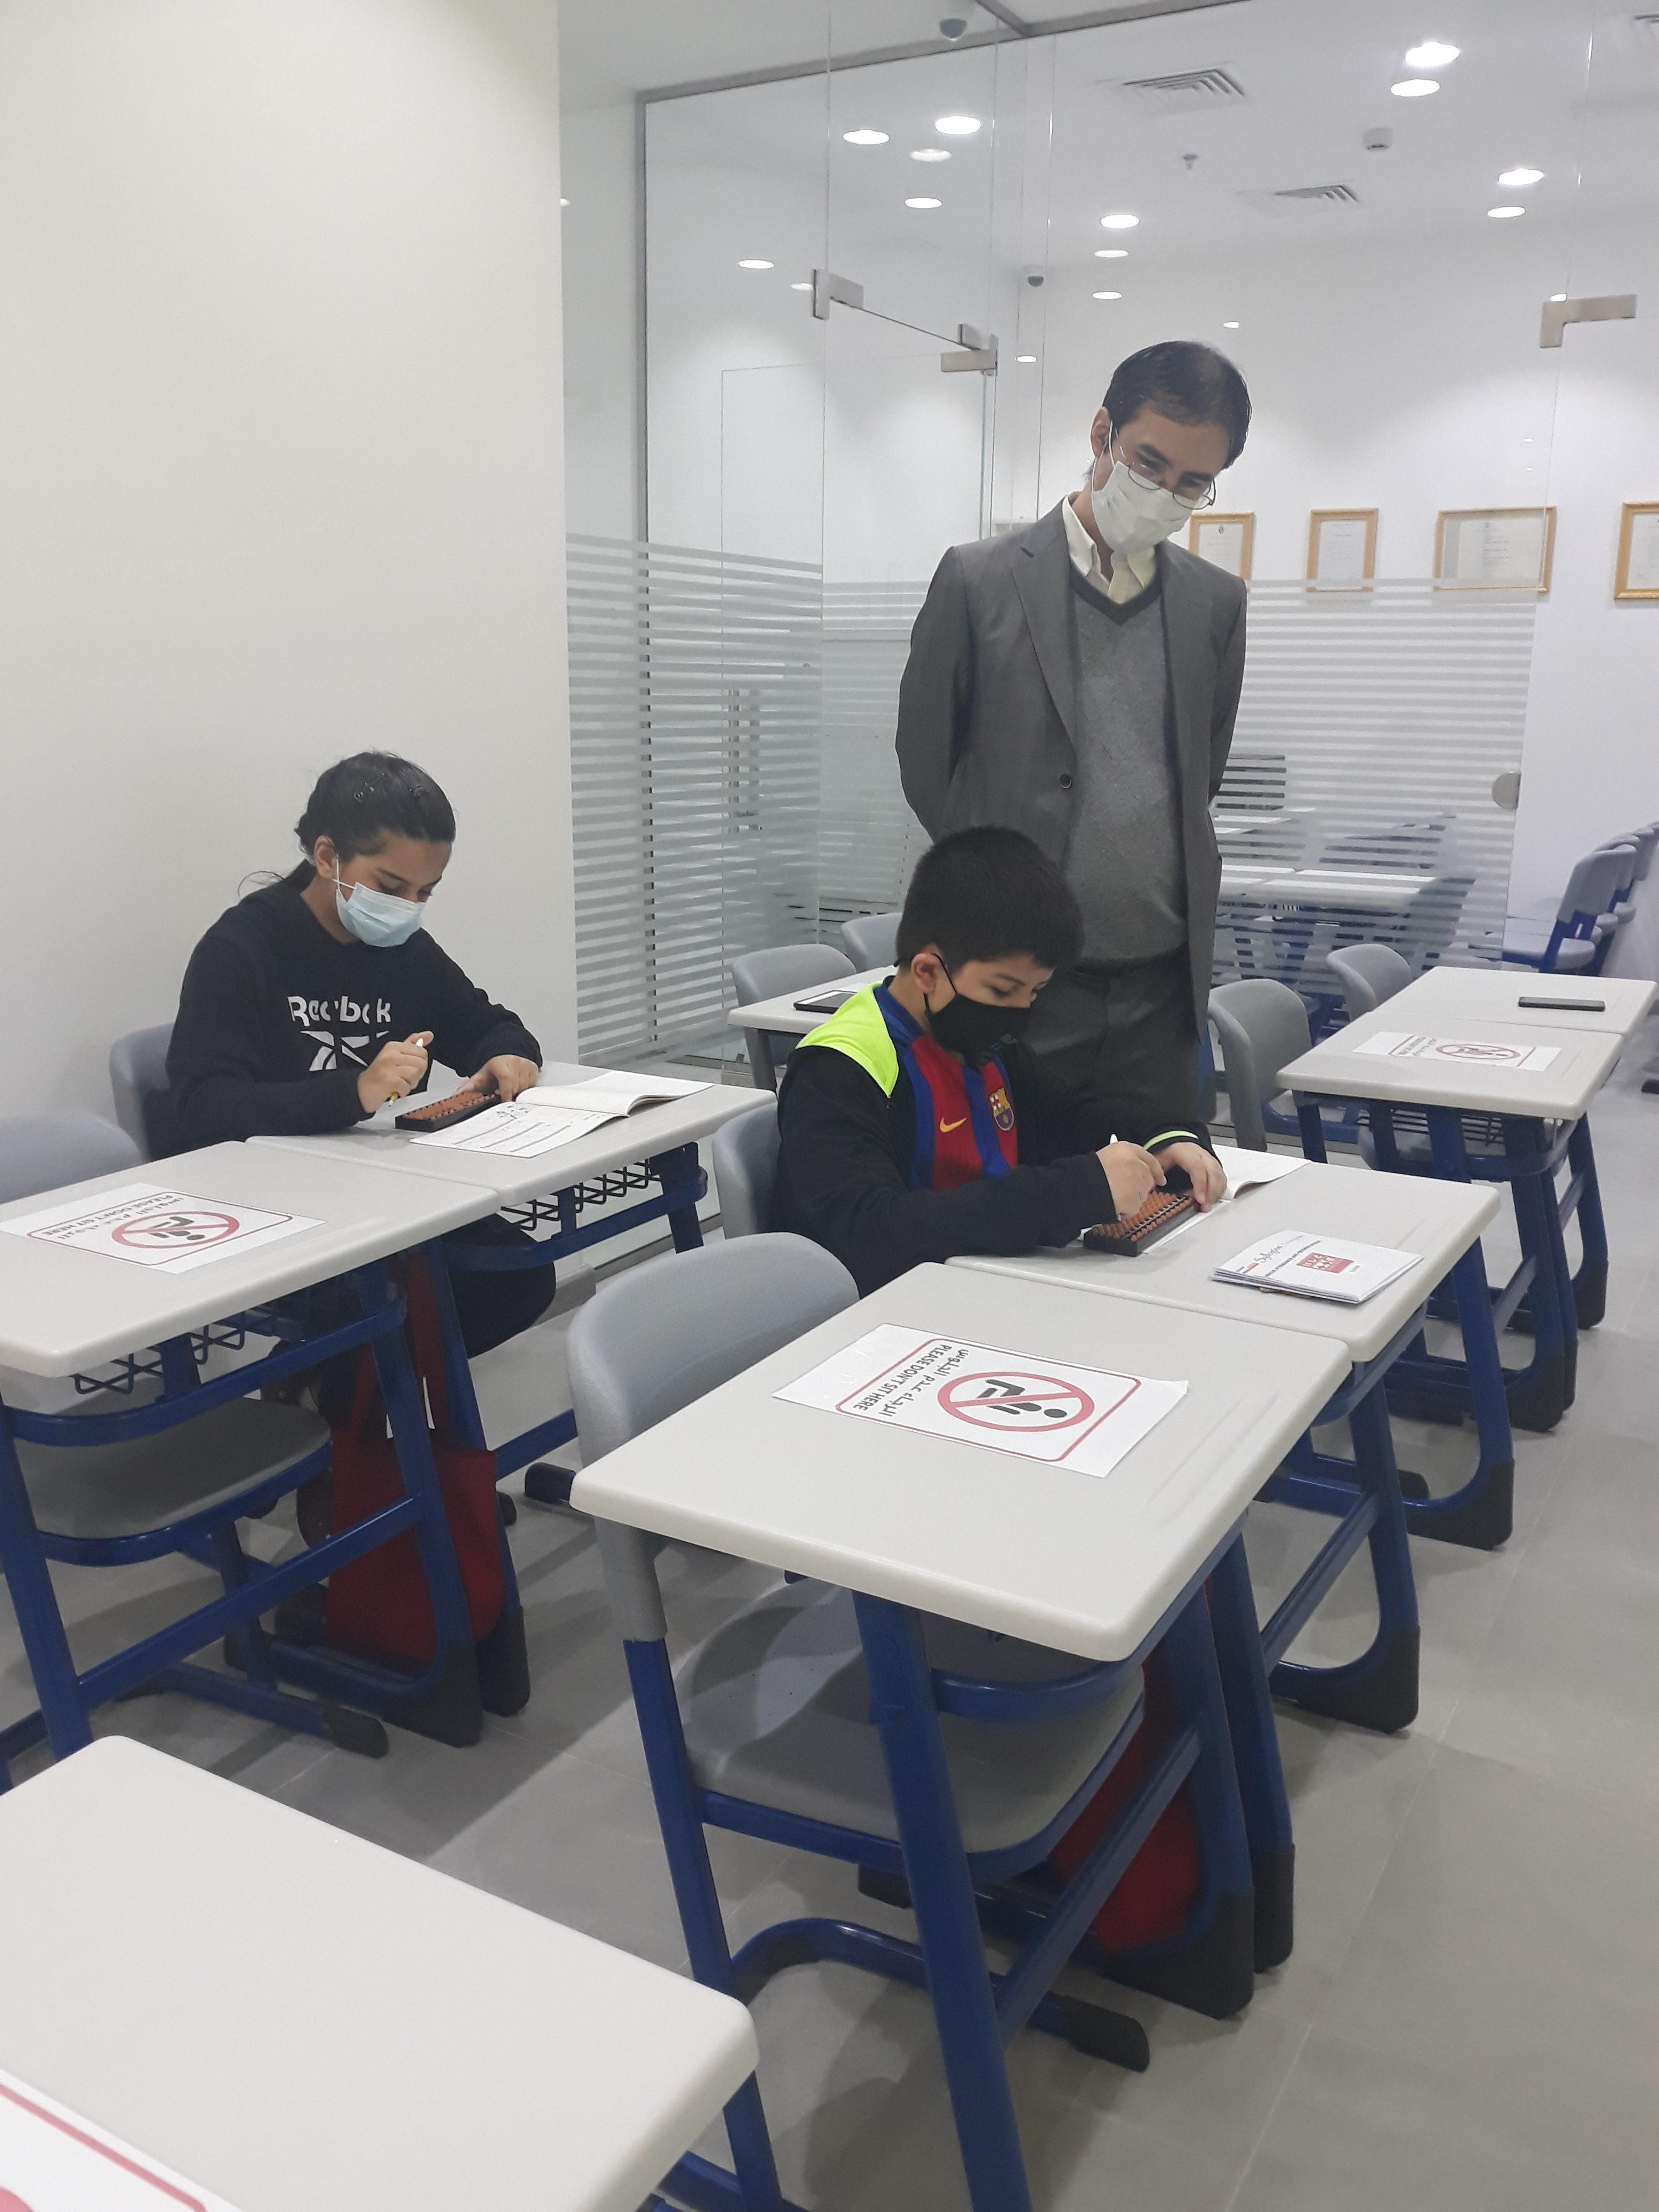 Our students are studying very diligently!